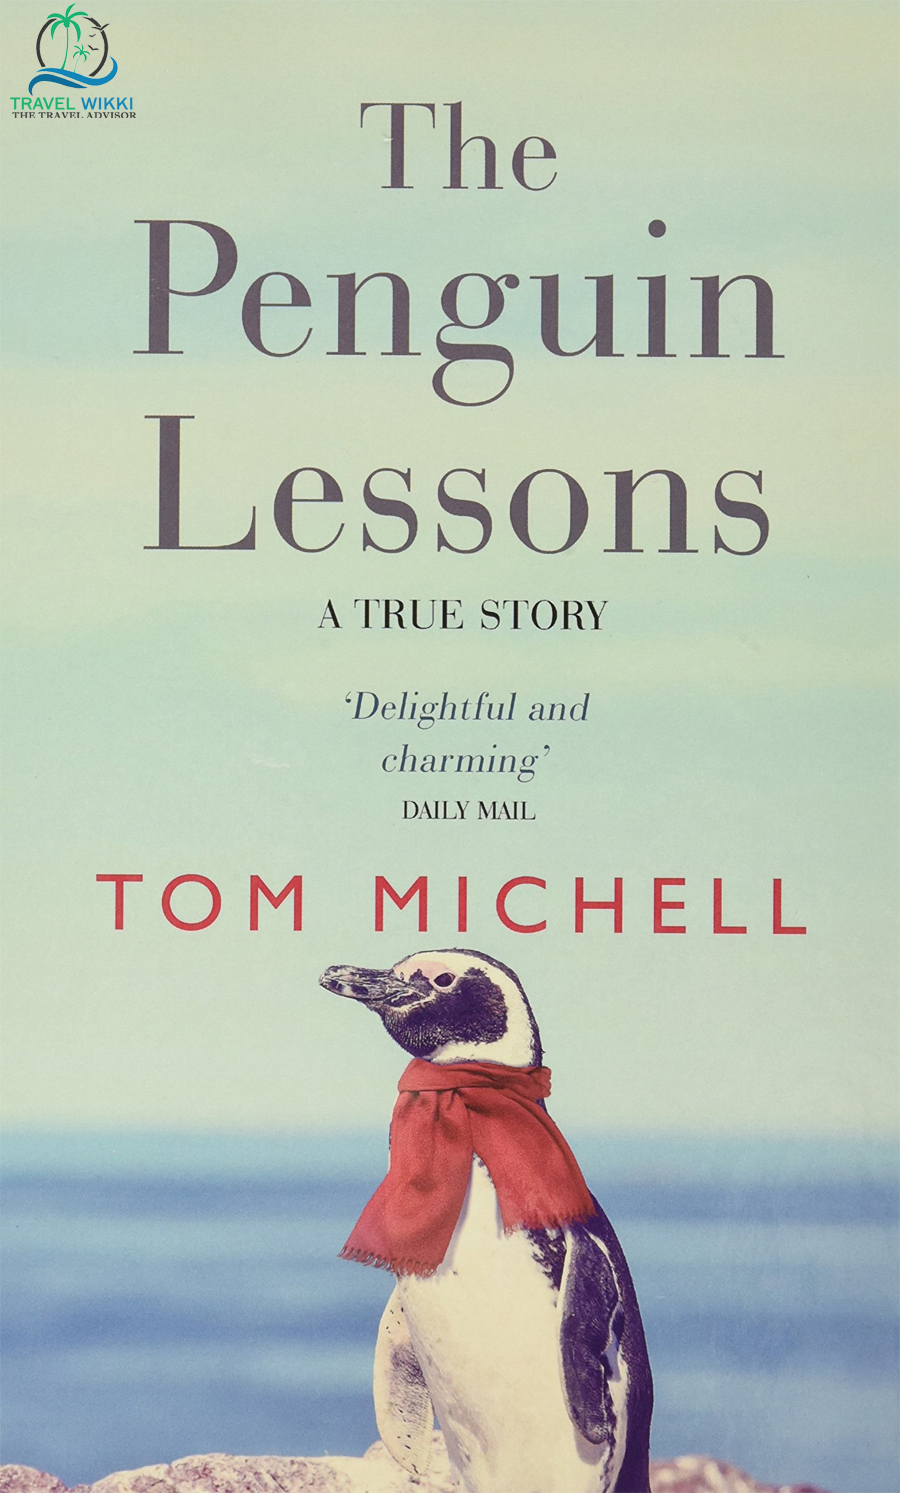 The Penguin Lessons, Tom Mitchell